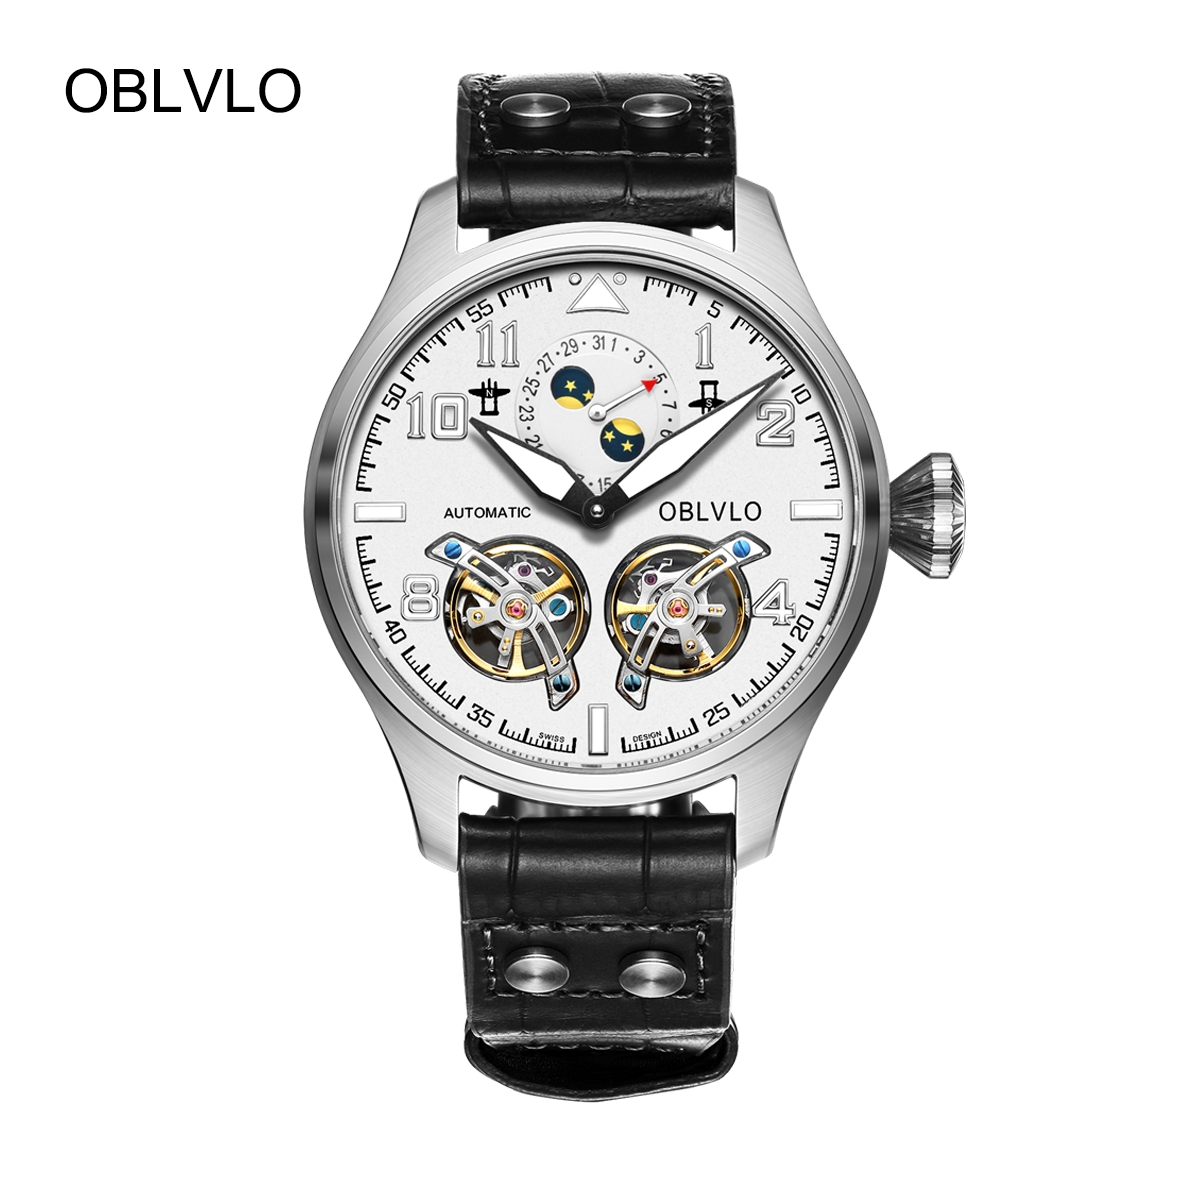 OBLVLO Mens Fashion Watches White Dial Steel Automatic Watch Date Tourbillon Leather Strap Watch OBL8232-YWB